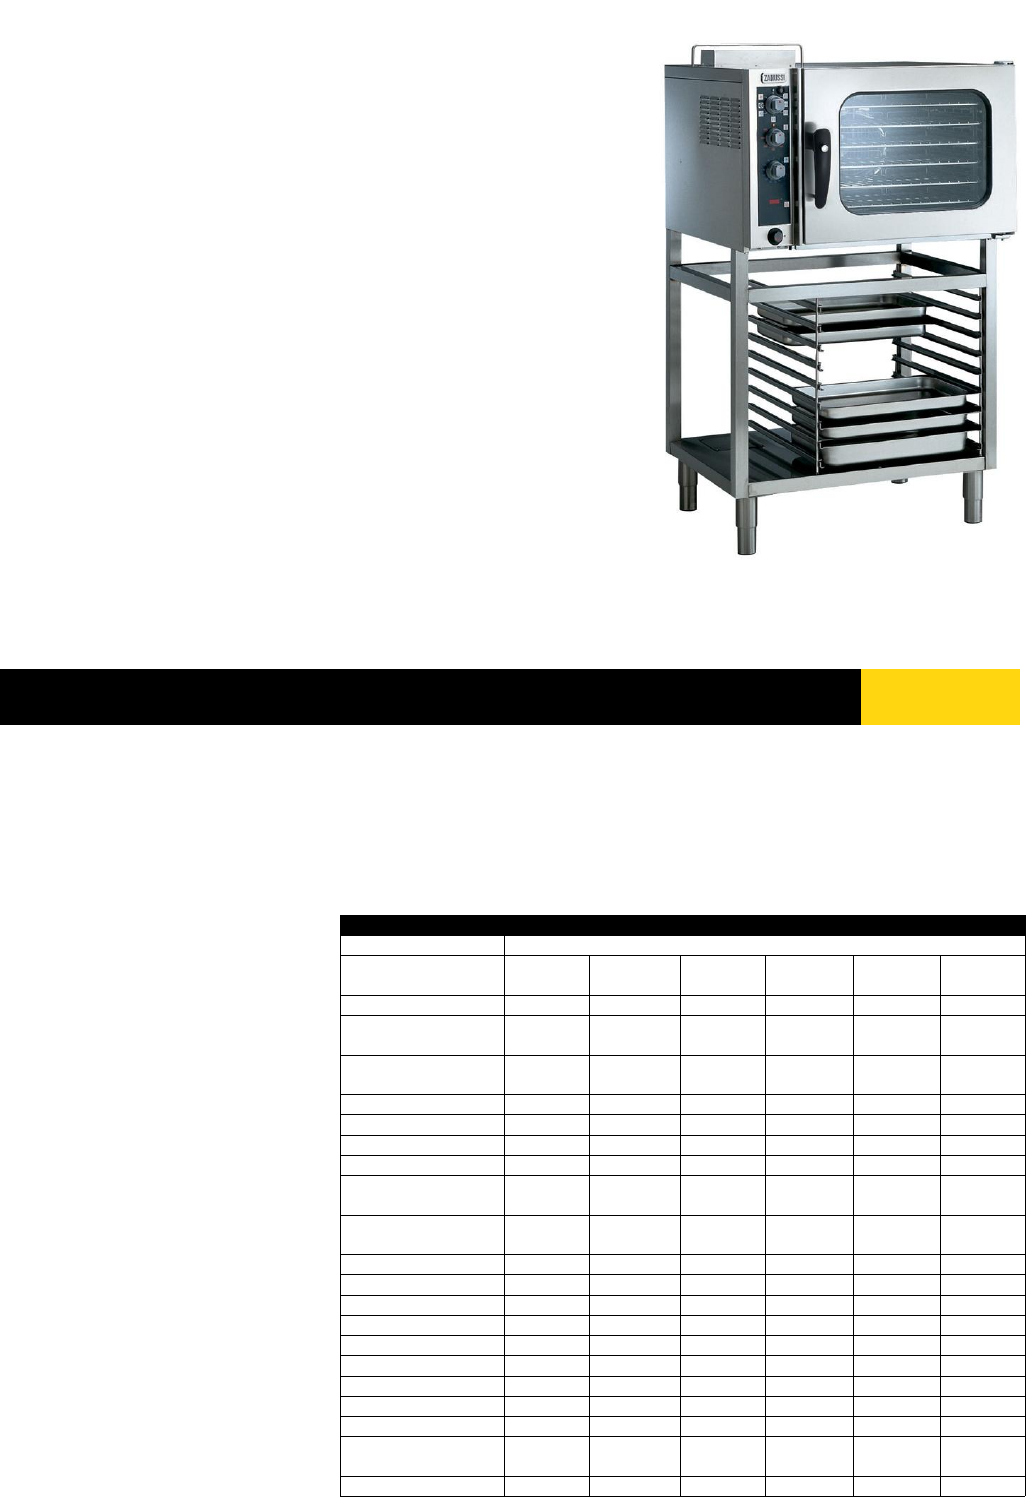 zanussi convection oven fcf 6 user guide manualsonline com rh kitchen manualsonline com Zanussi Logo.png zanussi electrolux gas cooker manual